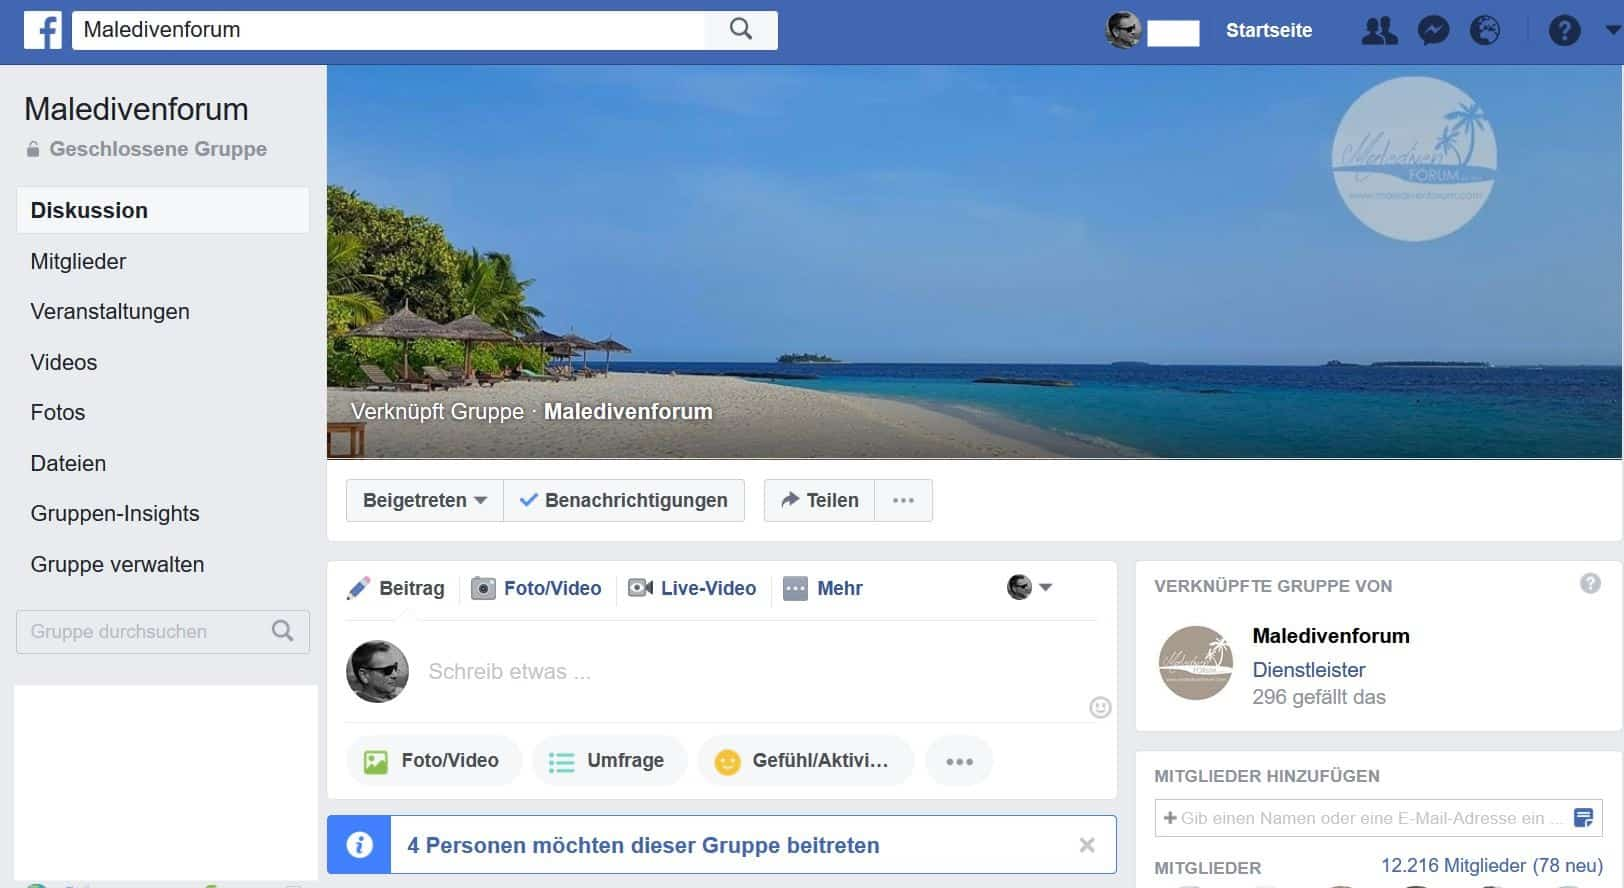 Maledivenforum Facebook-Gruppe